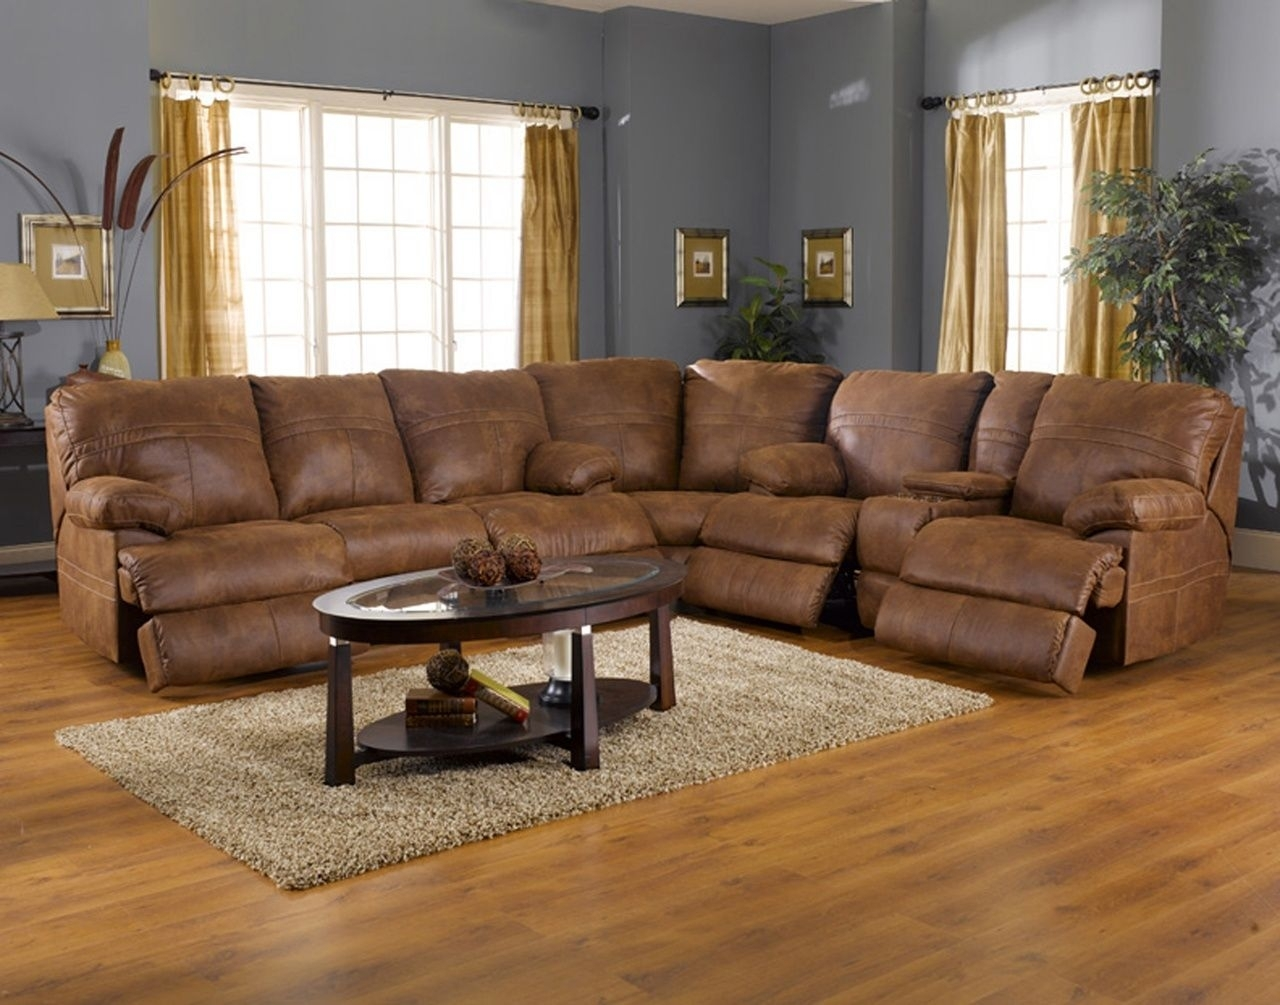 The Best Elegant Leather Sectional Sofa With Recliner Office Ideas Pertaining To Sectional Sofas With Recliners Leather (View 8 of 10)